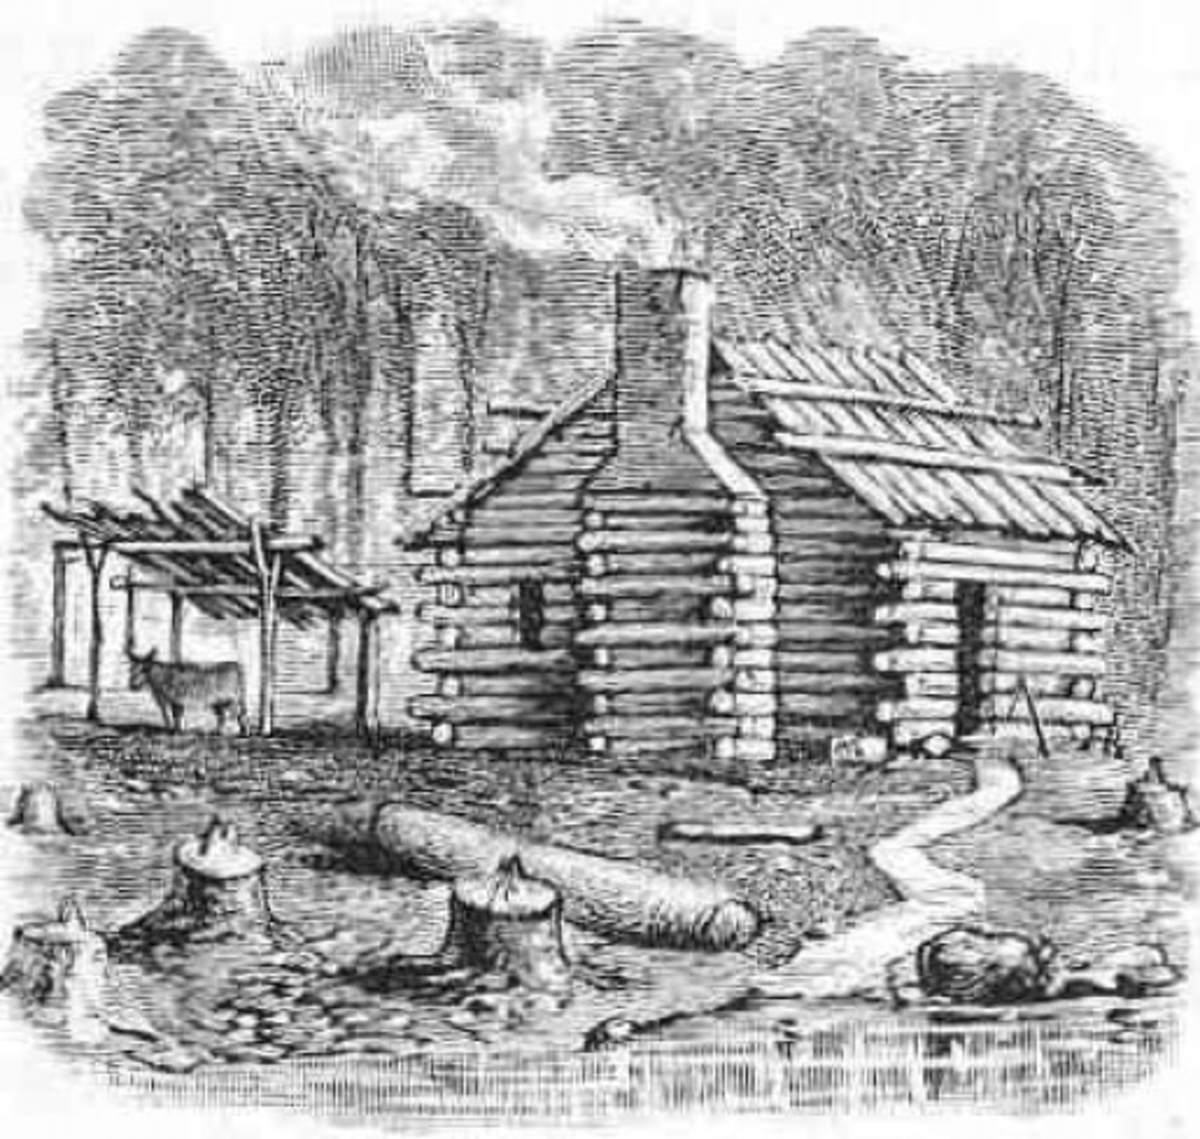 What Early American Homes of the First Colonial Settlers Were Like